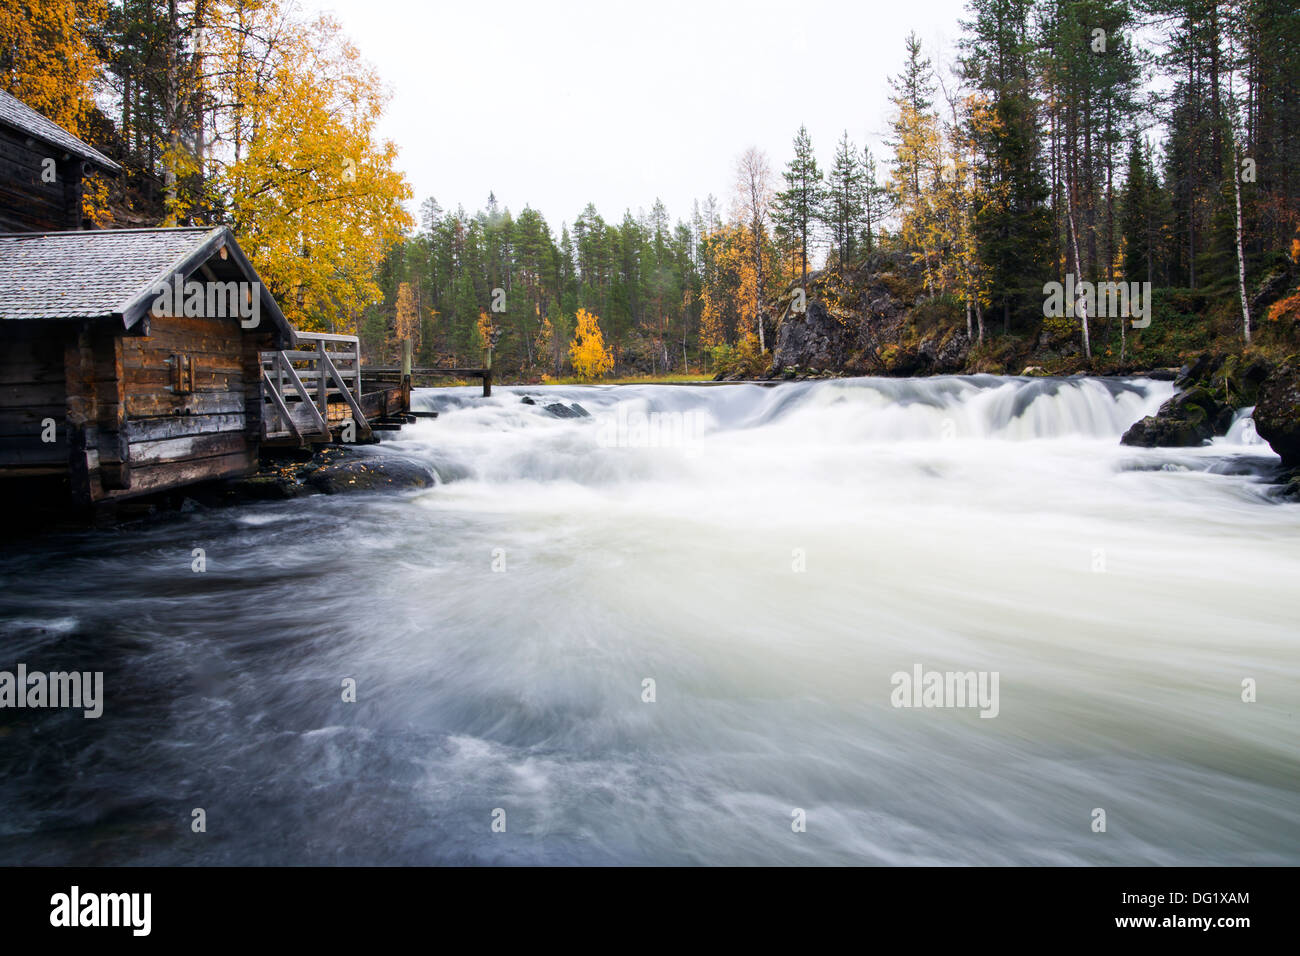 Fast flowing river flow and aged unemployed watermill - Stock Image